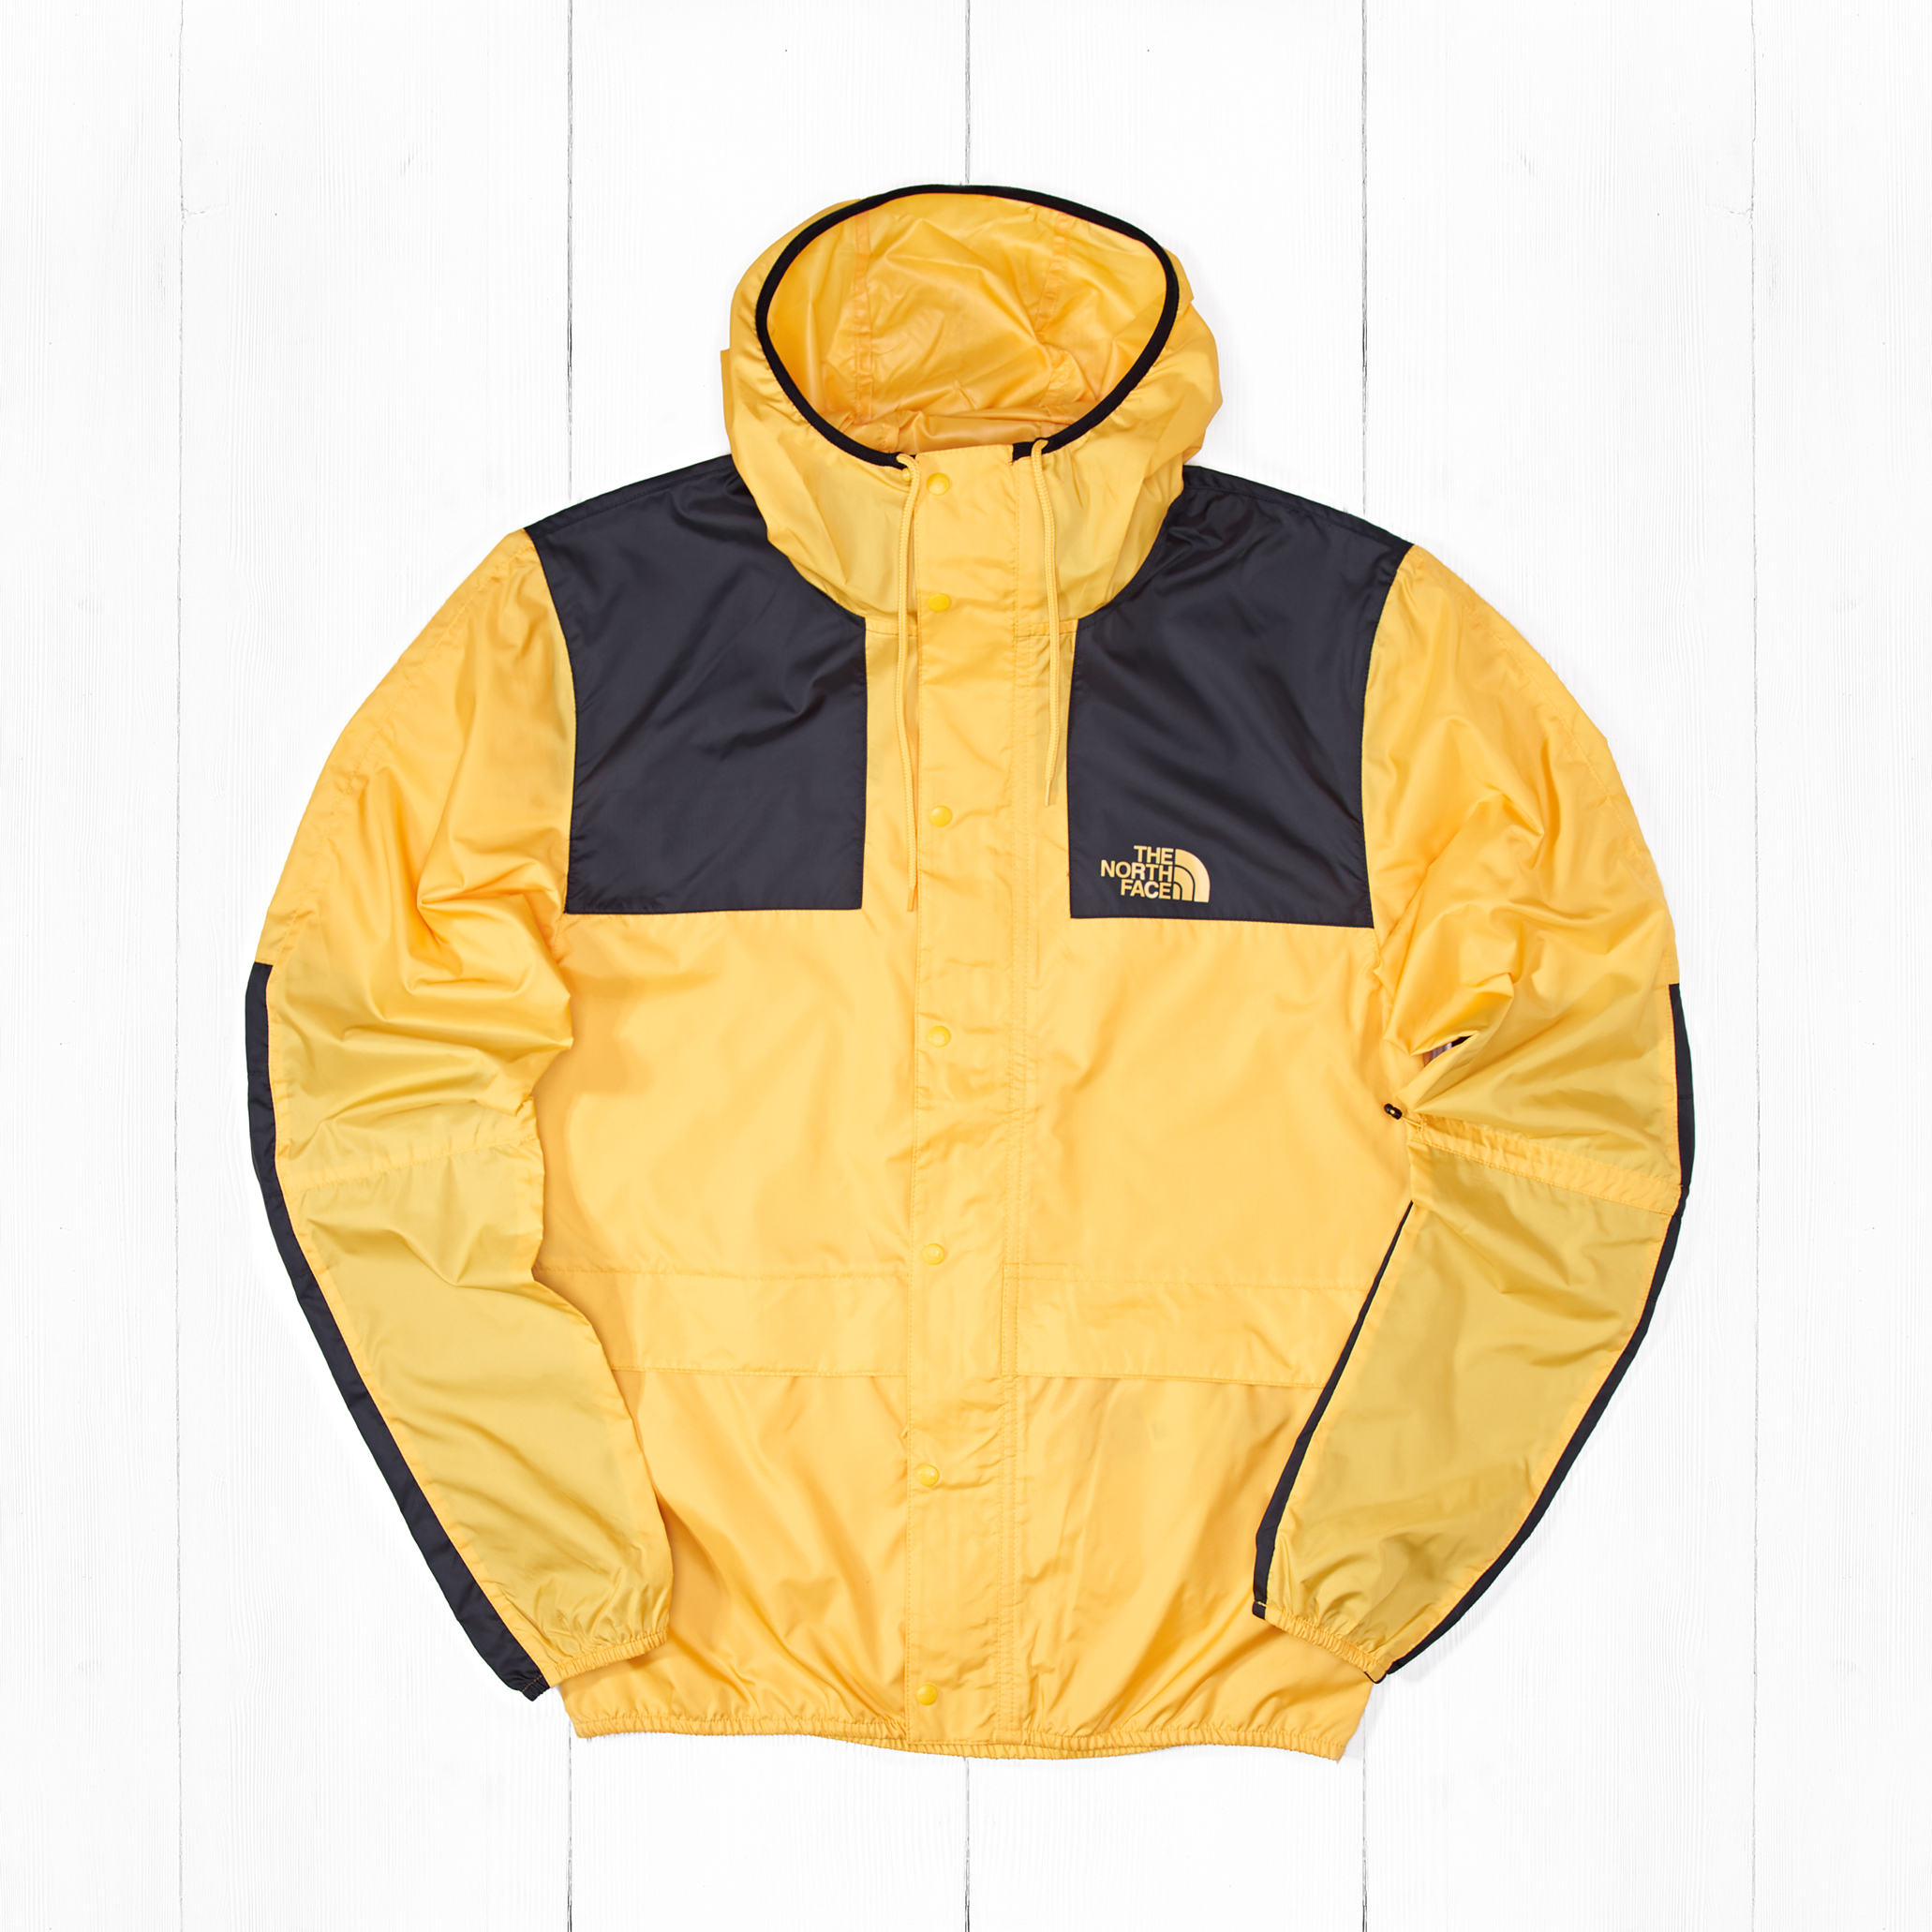 Ветровка The North Face 1985 MNT JKT Yellow Black